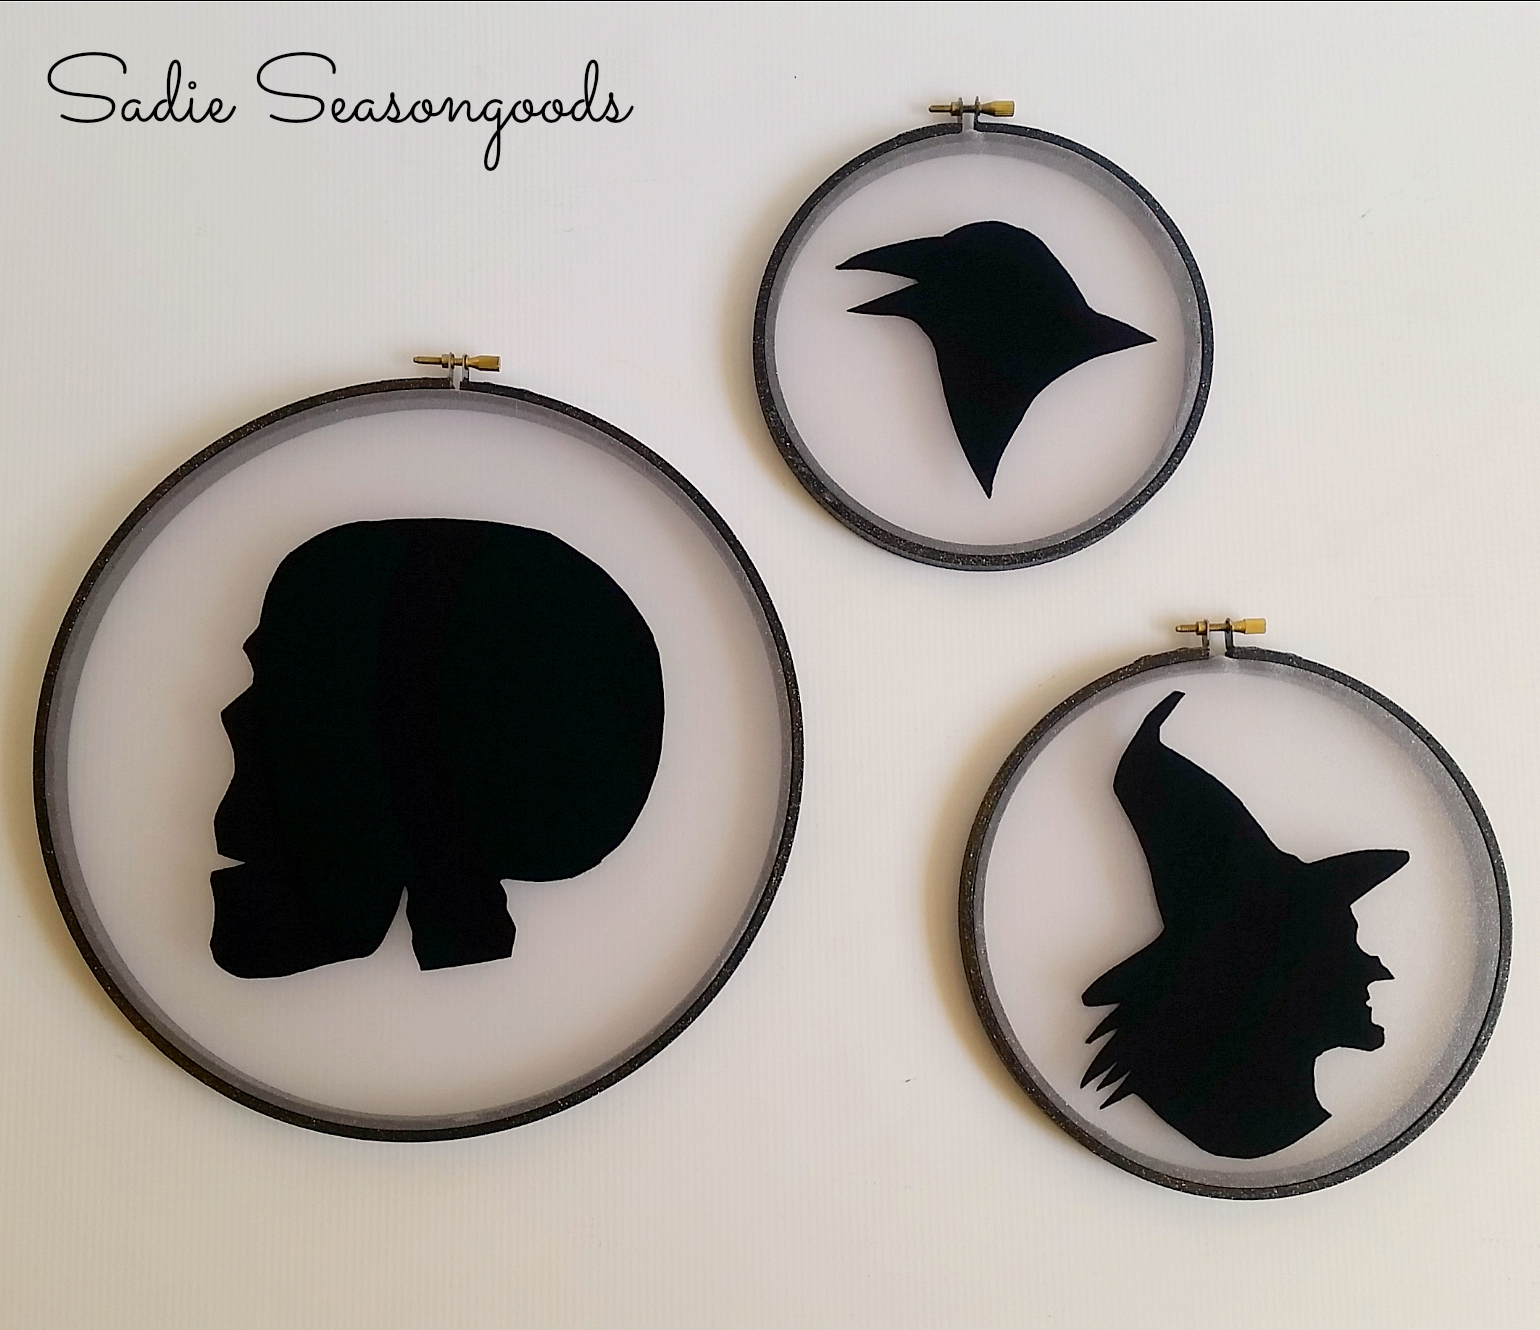 9_Halloween_silhouettes_DIY_upcycle_craft_by_Sadie_Seasongoods